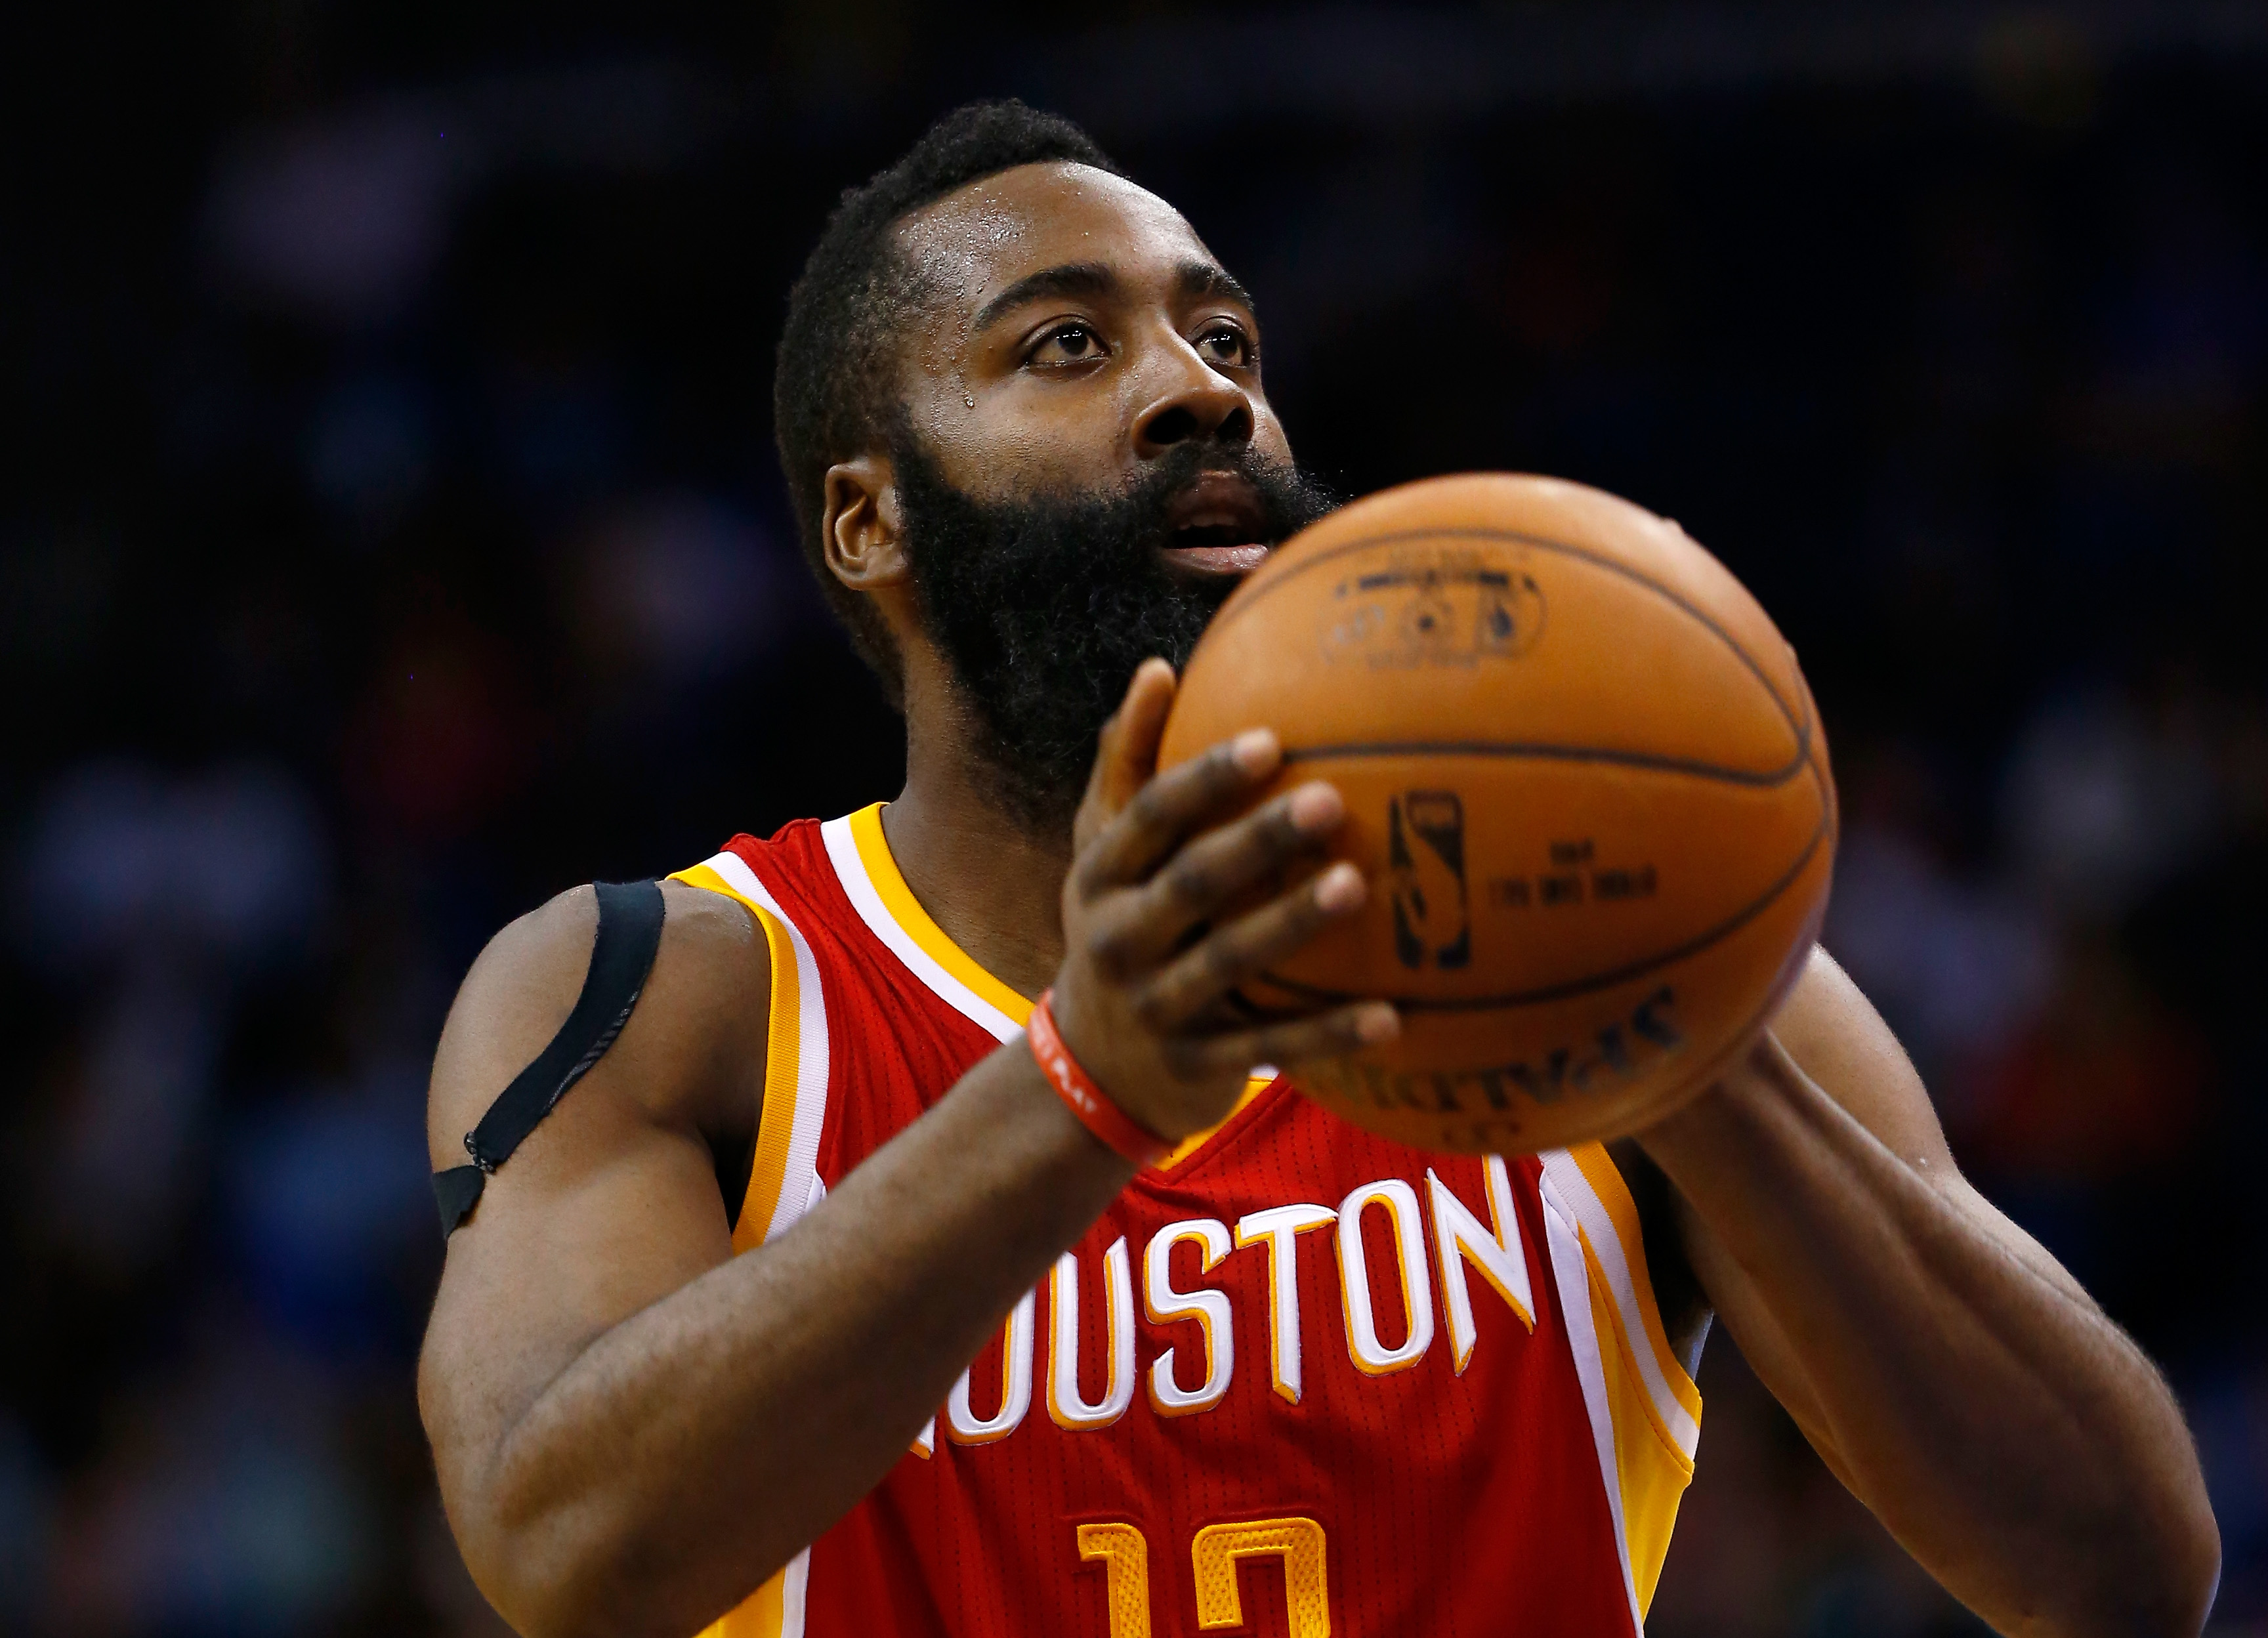 ec97790b7d33 Basketball  James Harden makes history with 60 point triple double ...